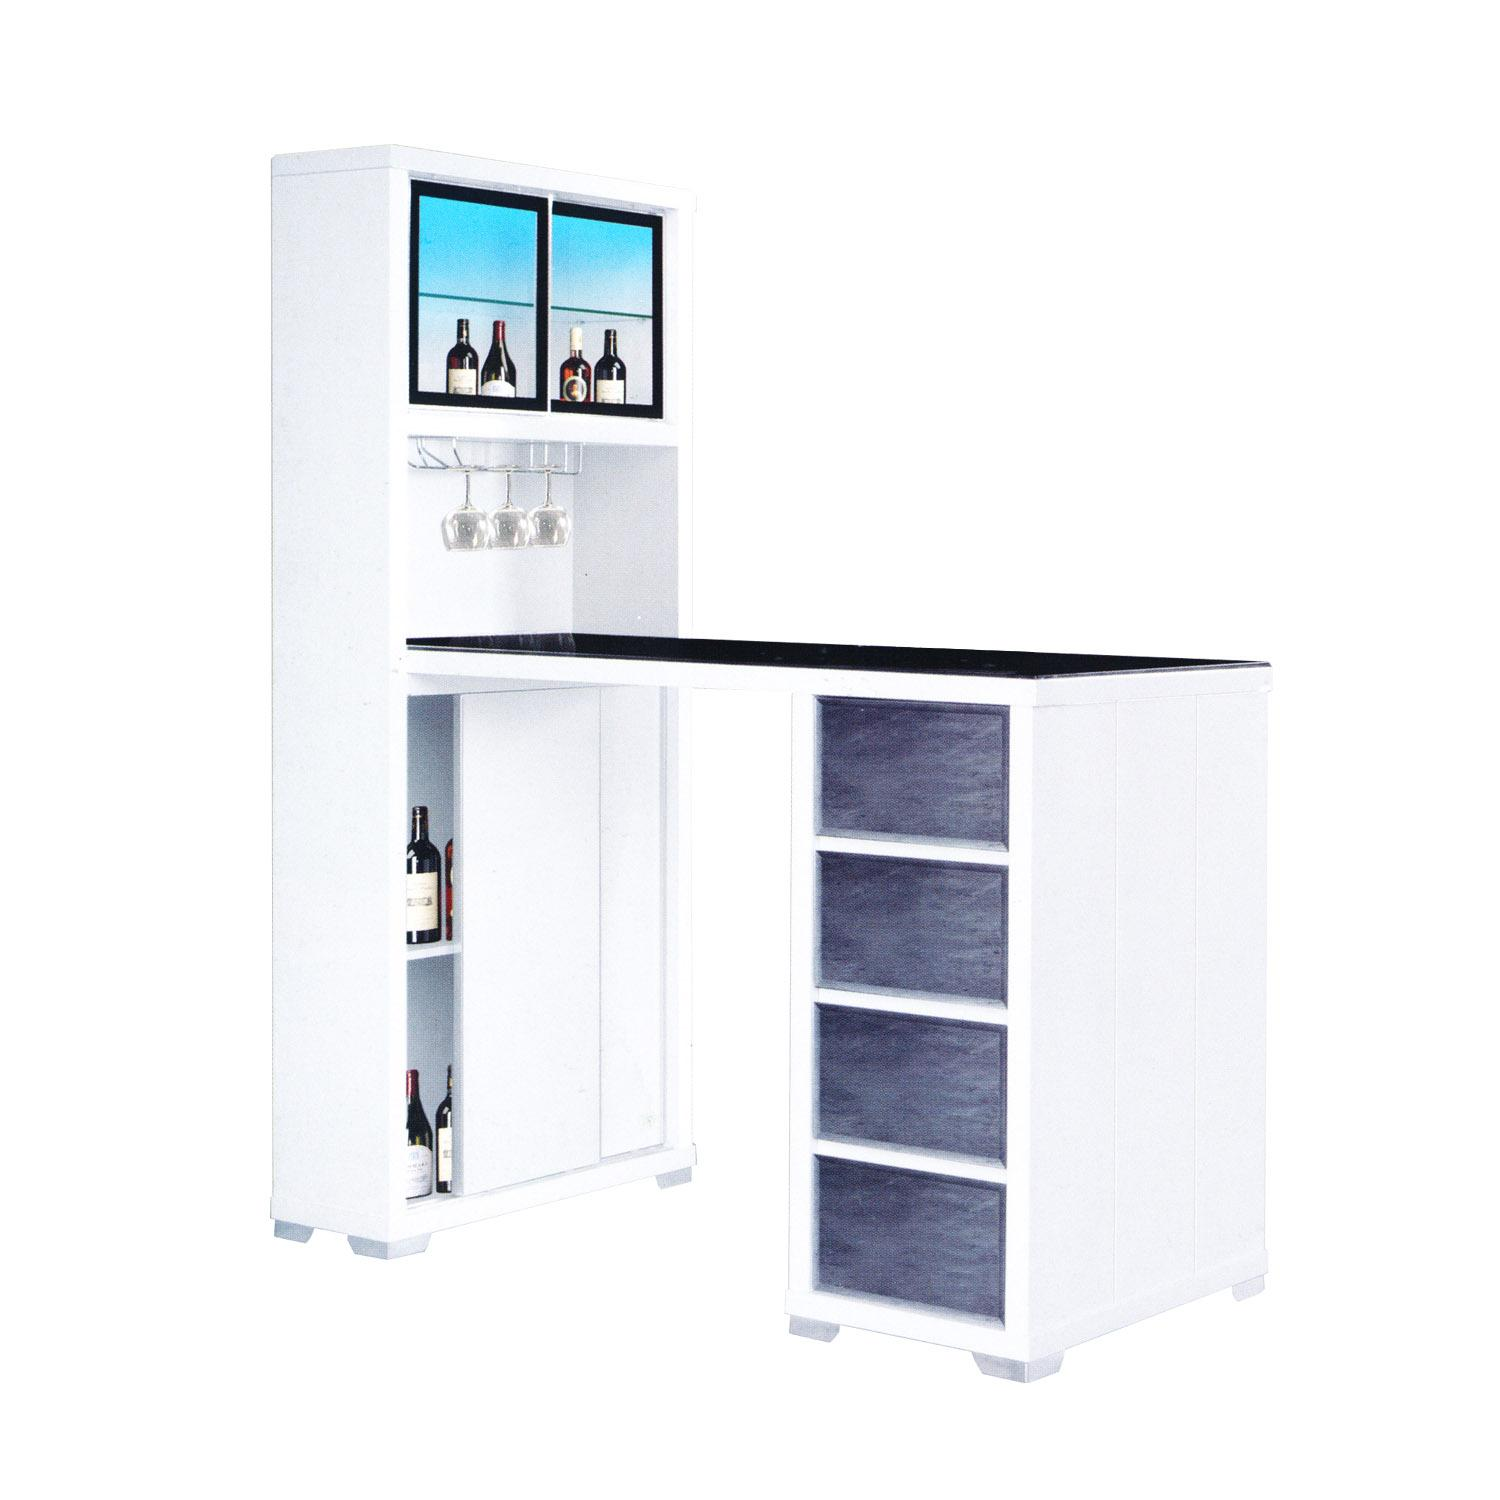 LIVING MALL_Fane 1 Bar Counter_FREE DELIVERY